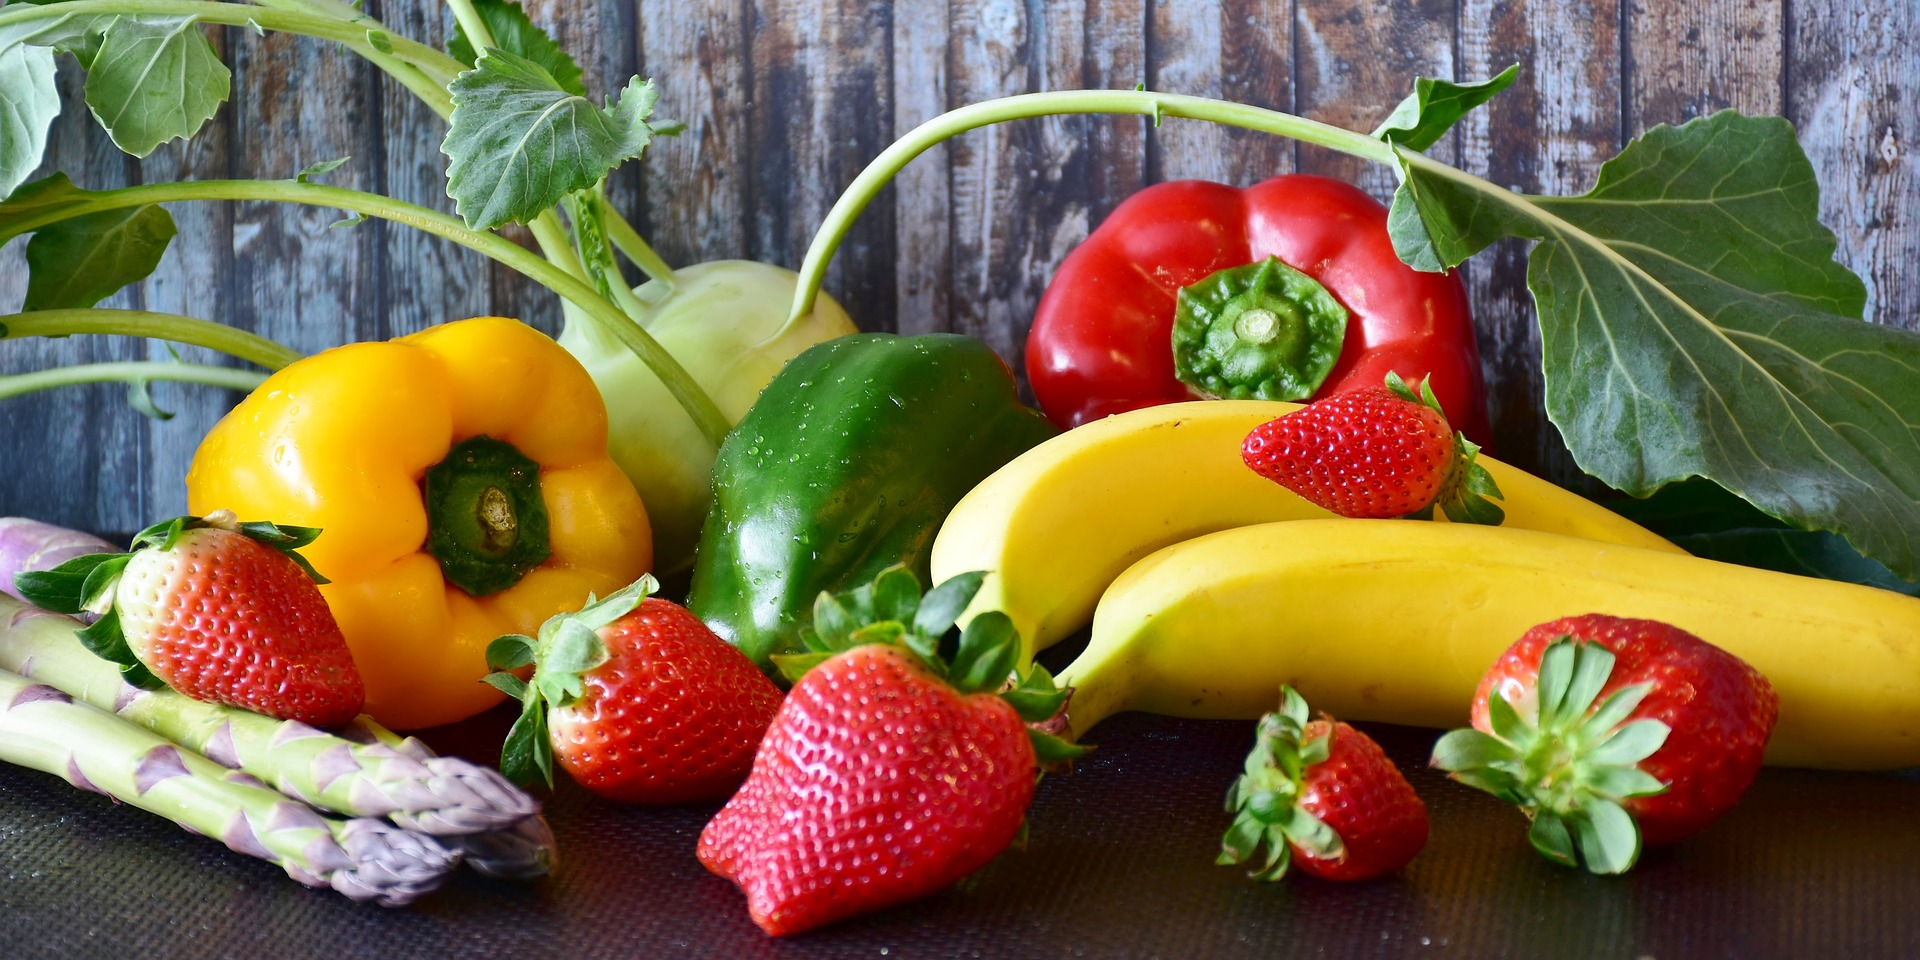 Picture of fruit and vegetables.